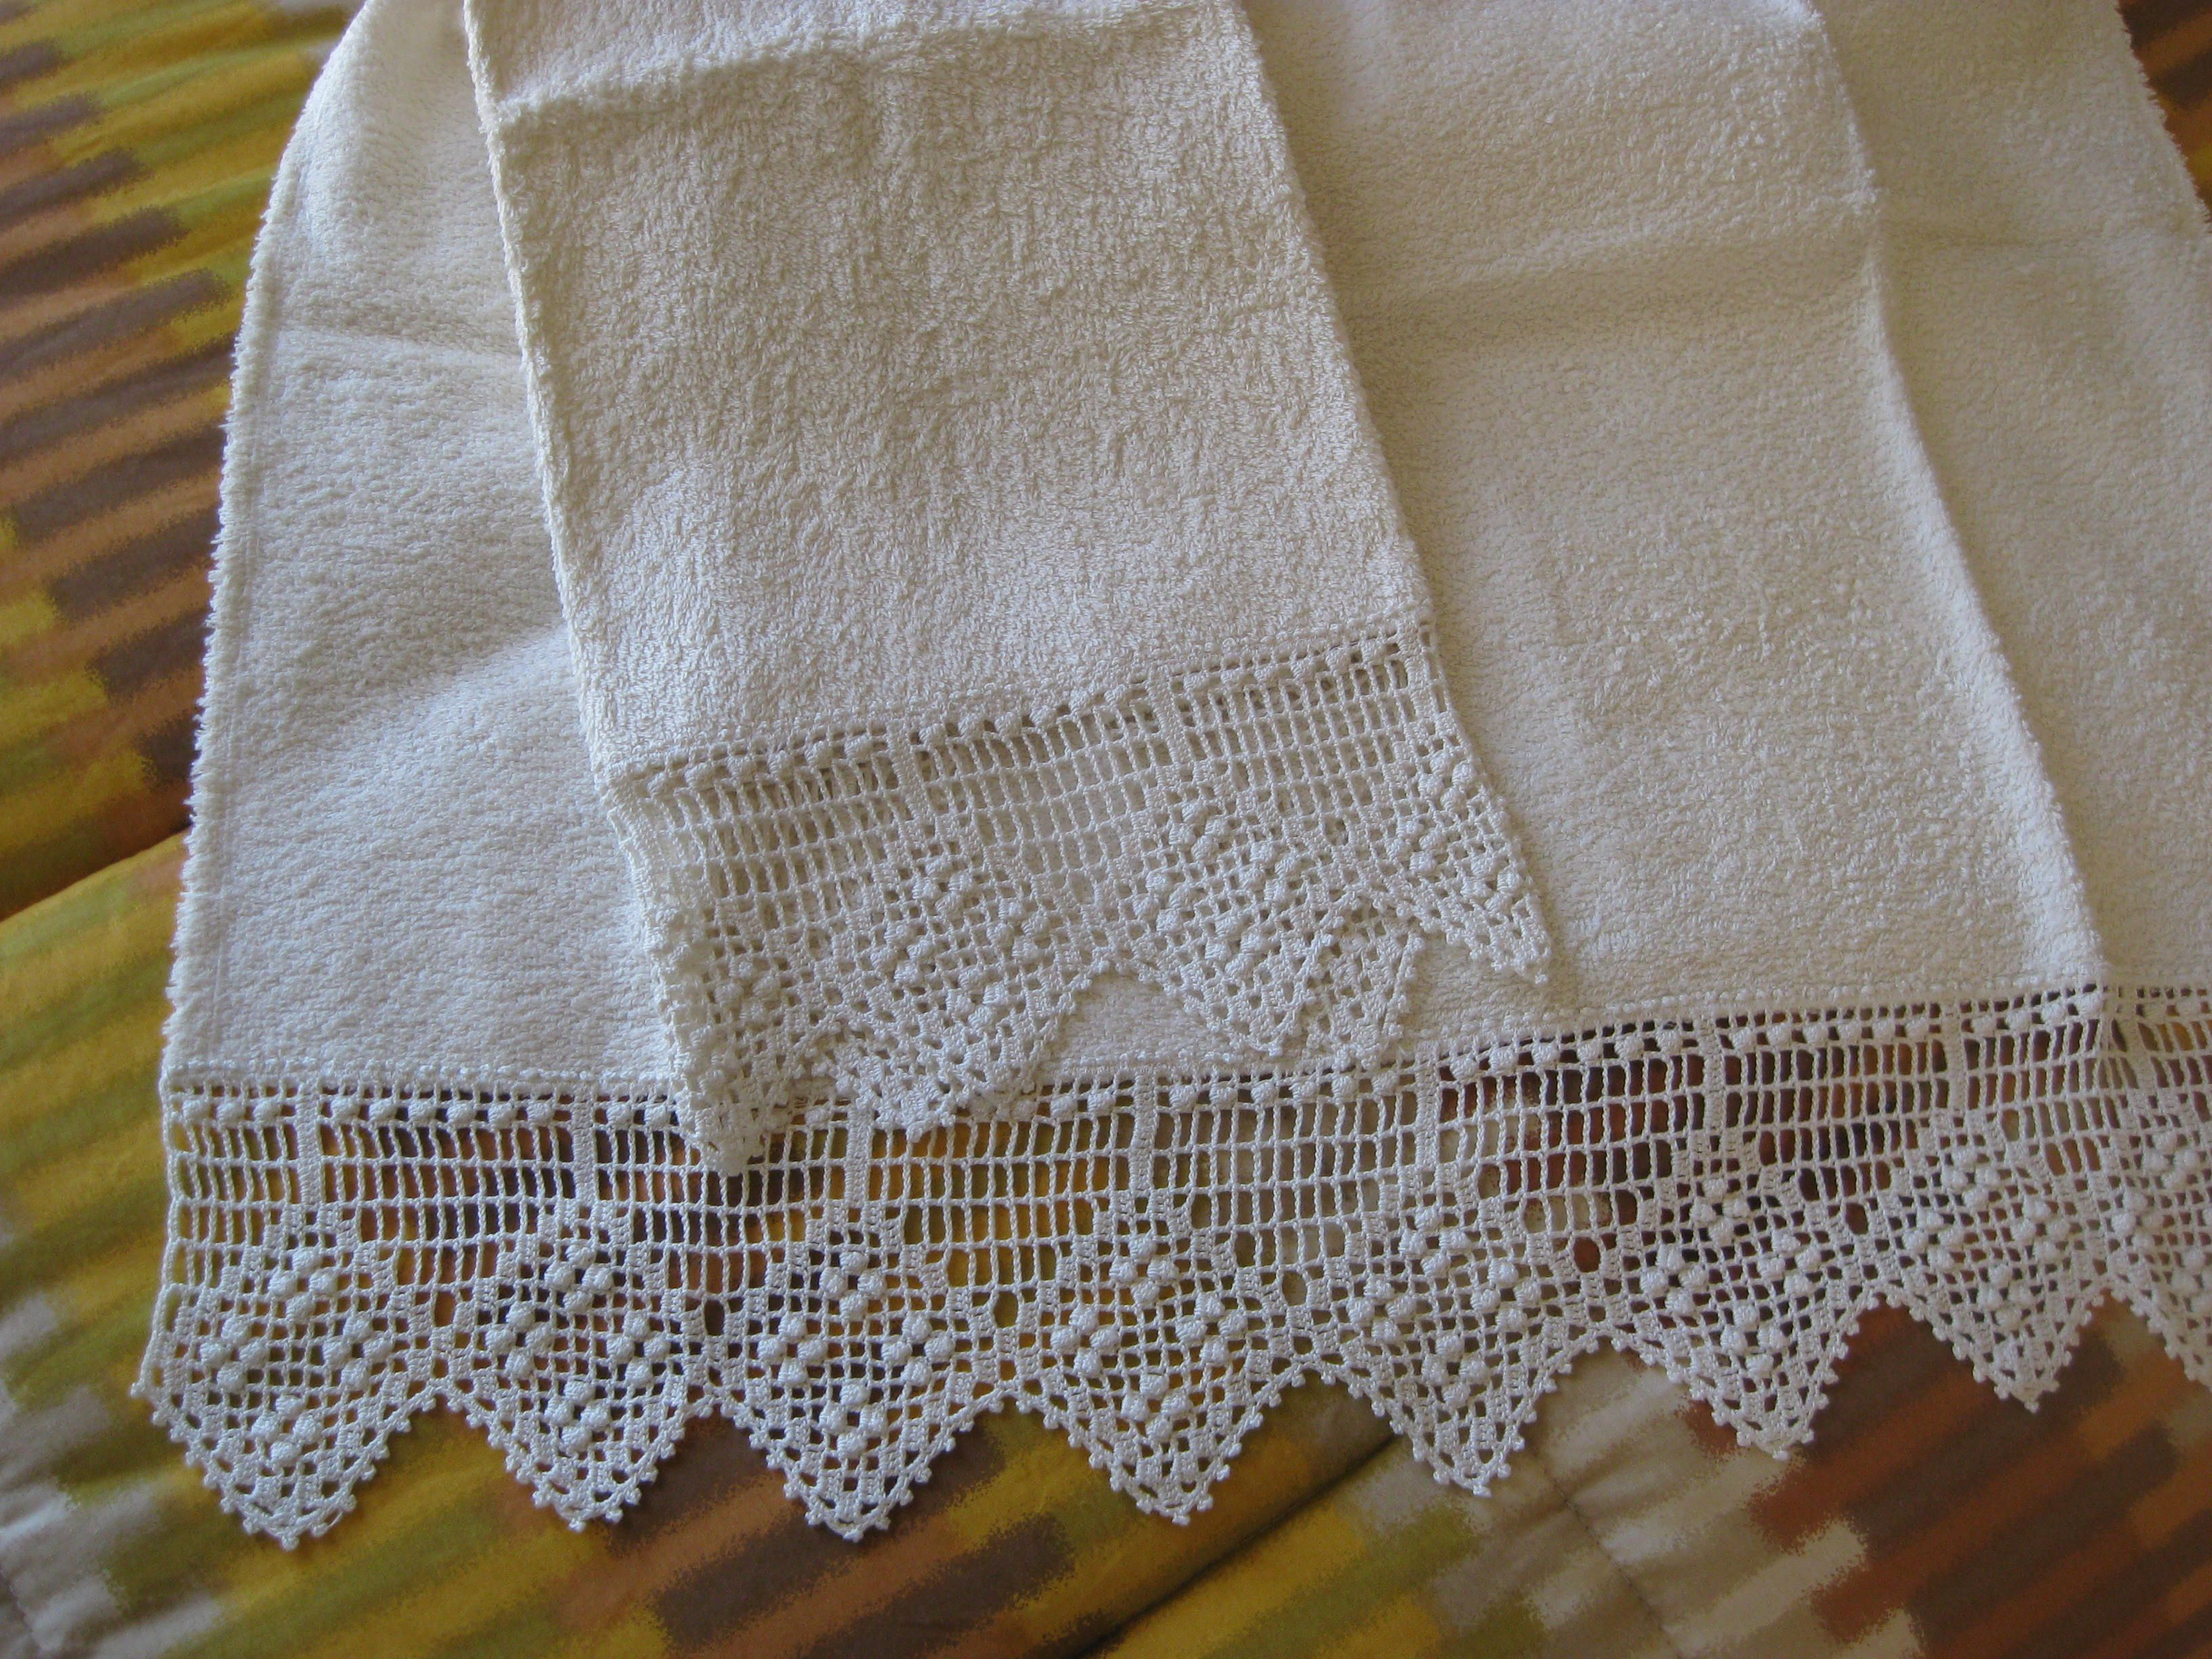 crochet patterns iva rose - Google Search | bordi frange e pizzi ...